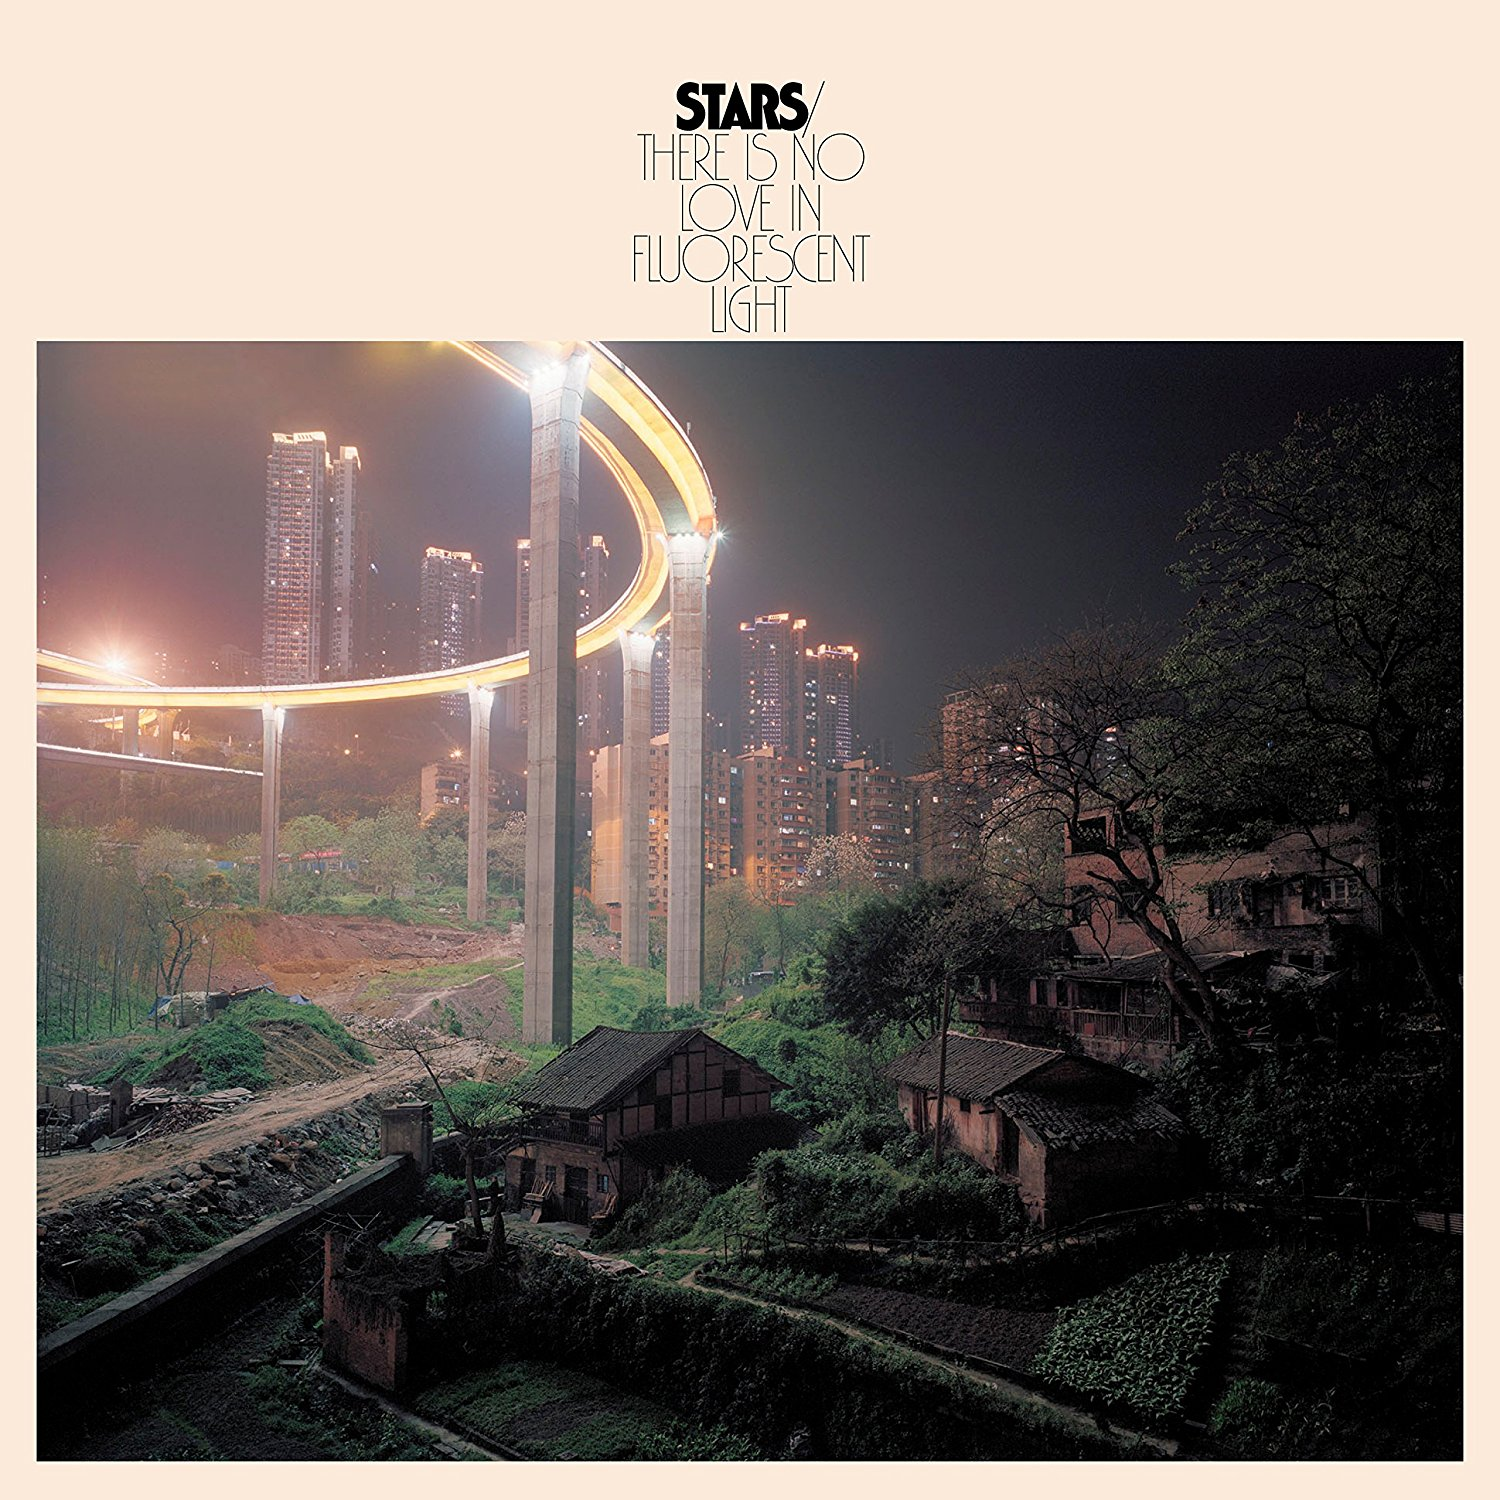 Stars: There Is No Love In Fluorescent Light [Album Review]